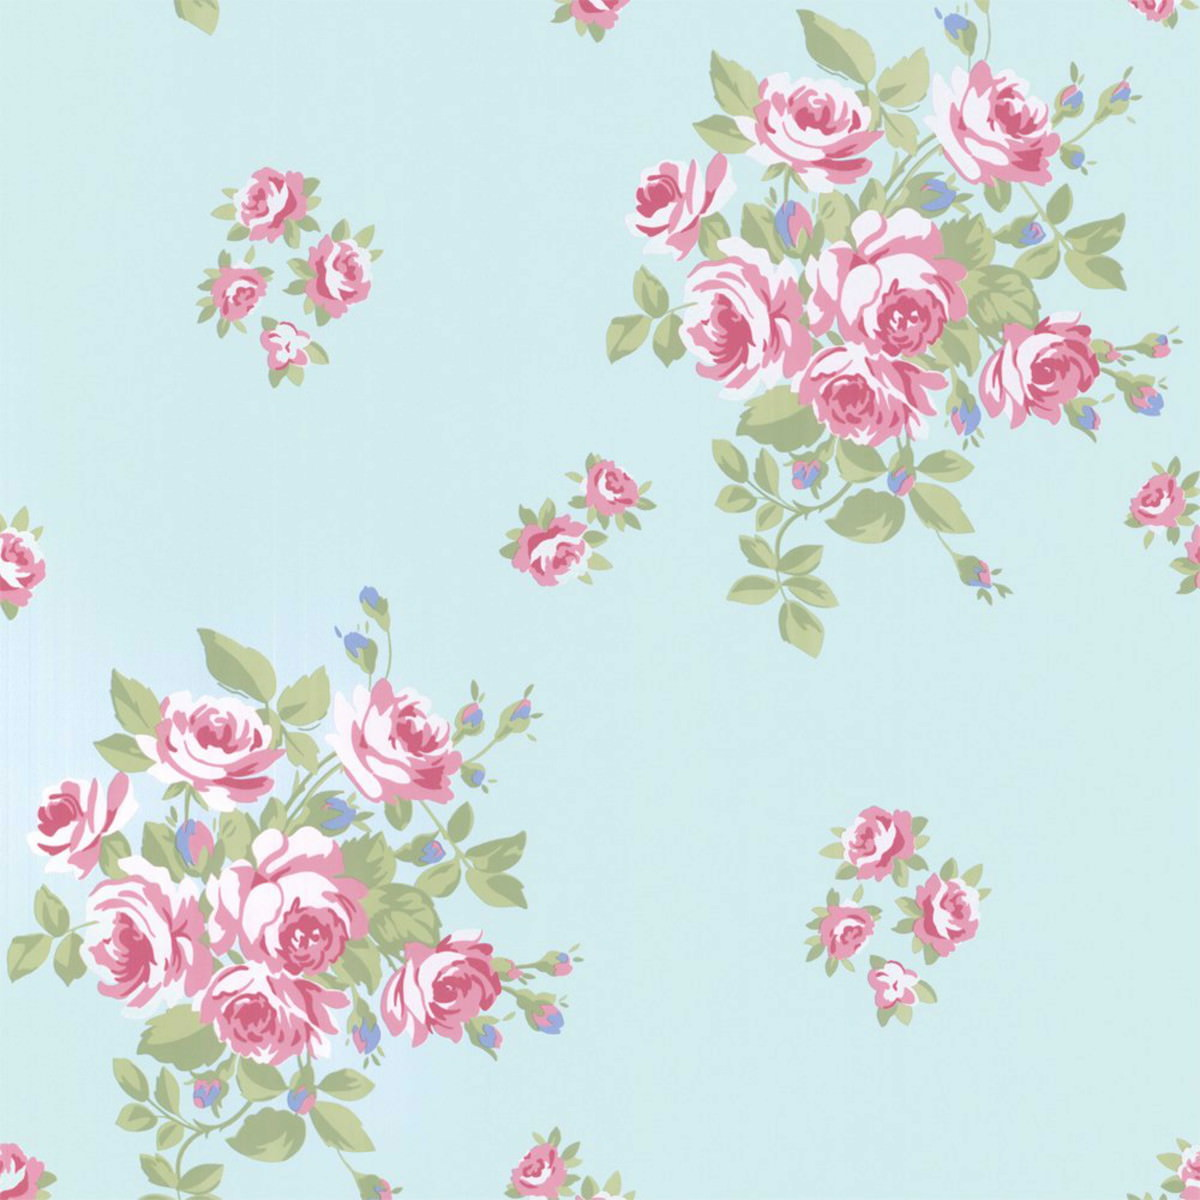 Download 15 Free Floral Vintage Wallpapers